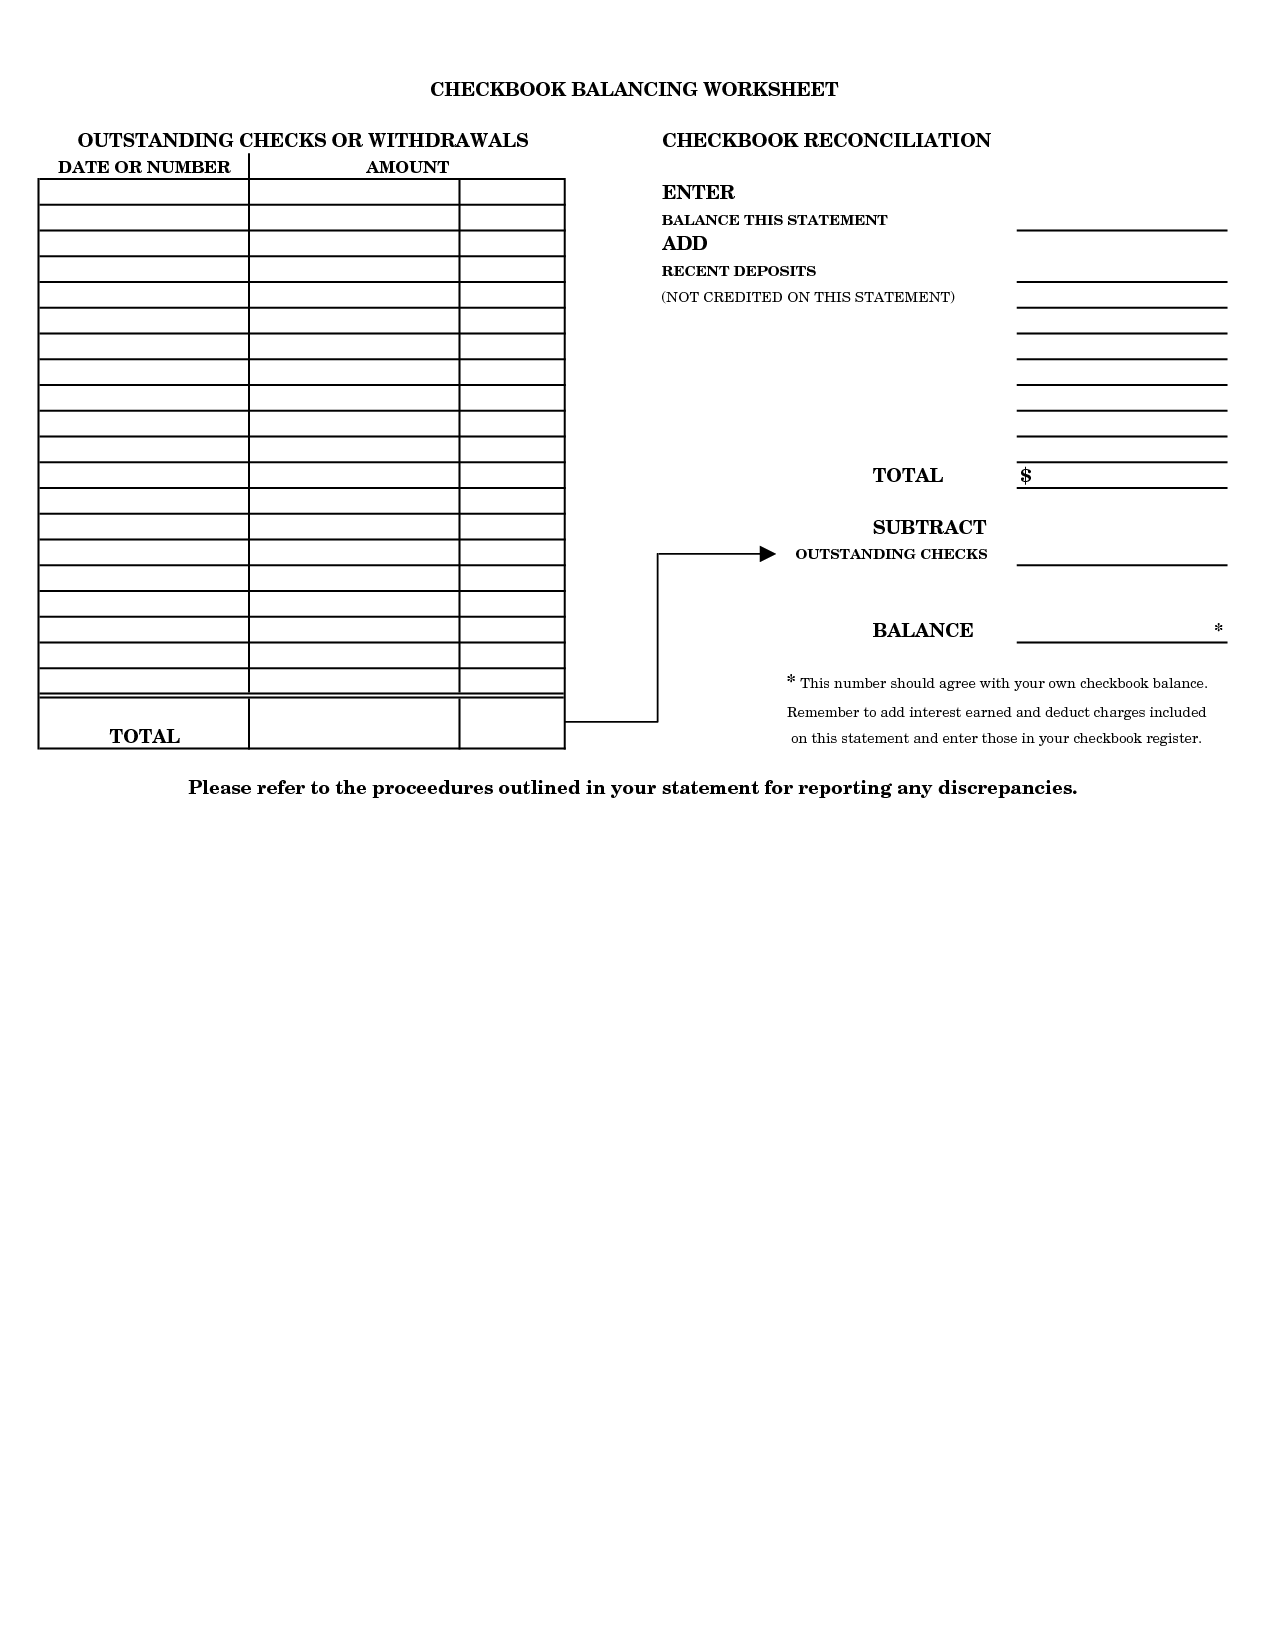 Worksheets Balancing A Checkbook Worksheet printable checkbook balancing form worksheet outstanding checks or withdrawals date